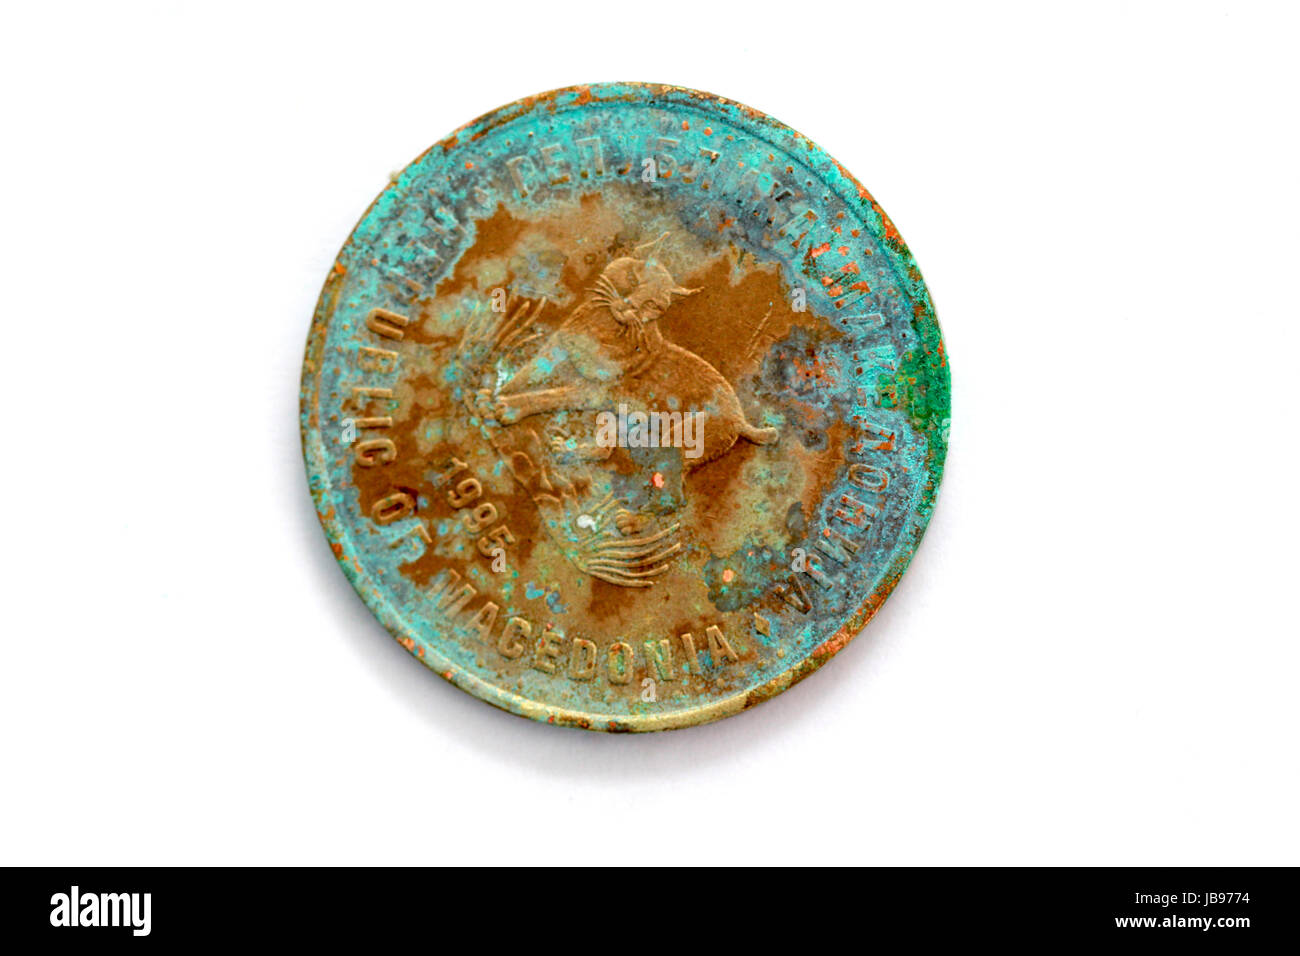 coin from macedonia, denar currency oxidation,image of a - Stock Image